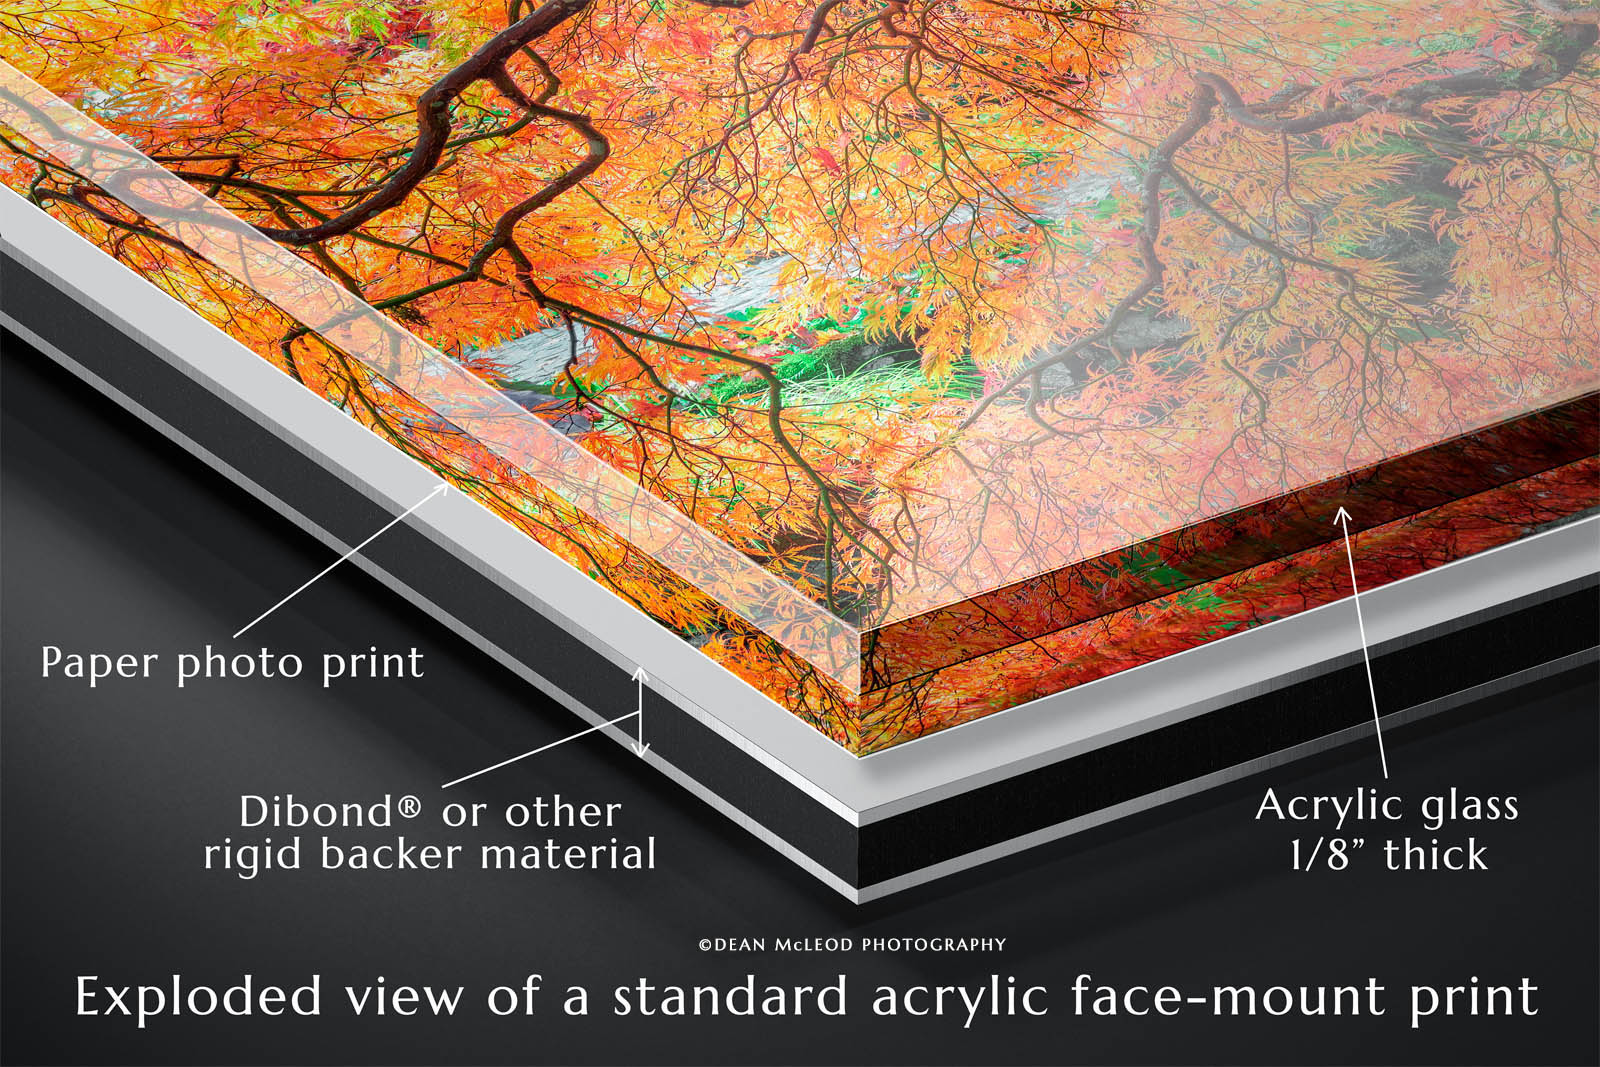 Diagram illustrating the layers of a typical acrylic face-mount photographic print.